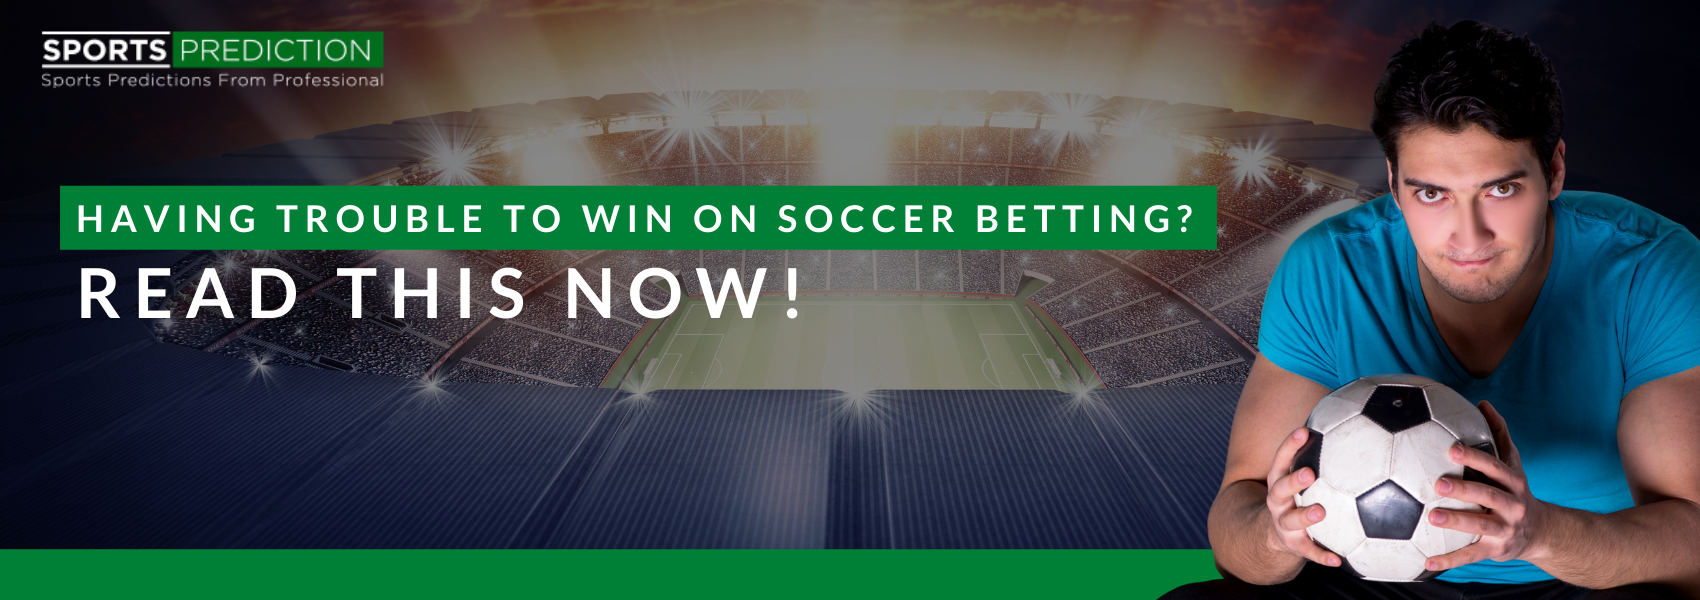 Having Trouble To Win On Soccer Betting? Read This Now!